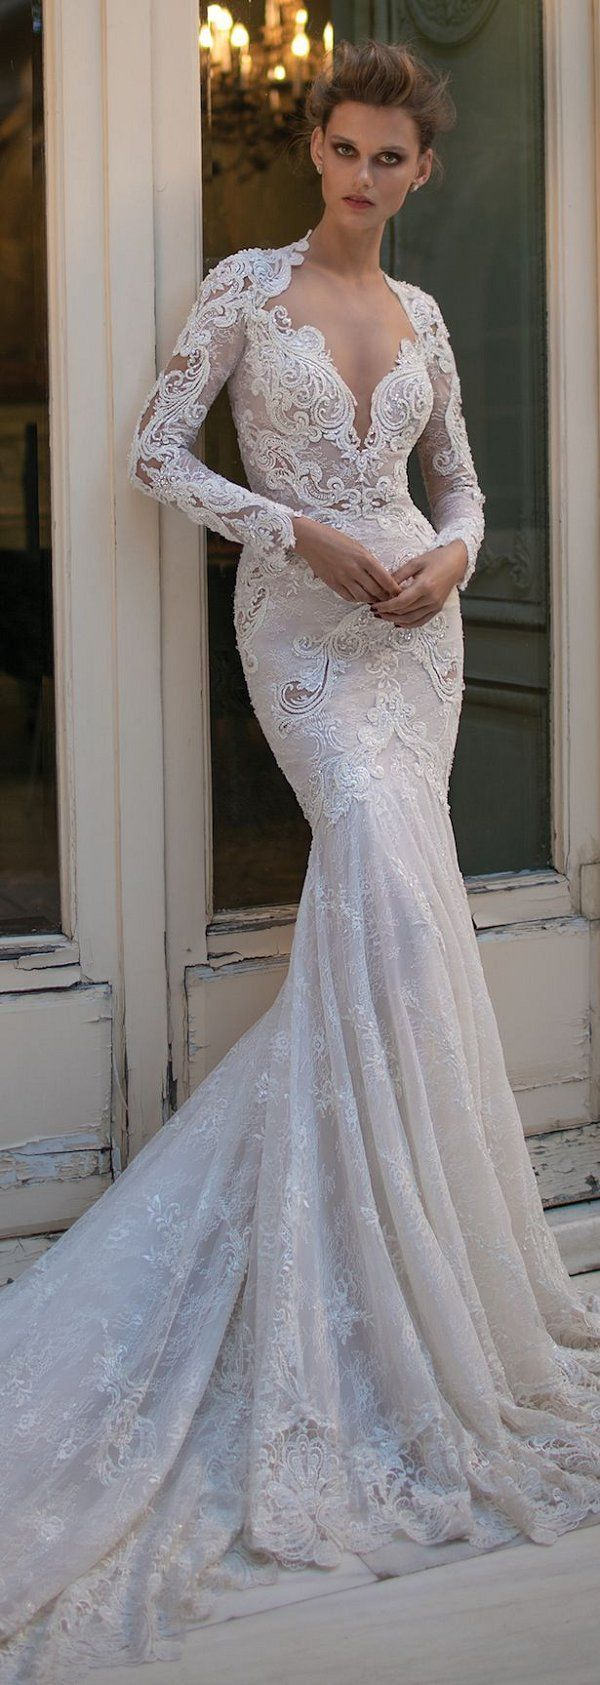 bridal dress Top 50 brautkleid mit ärmel romantisch schlicht